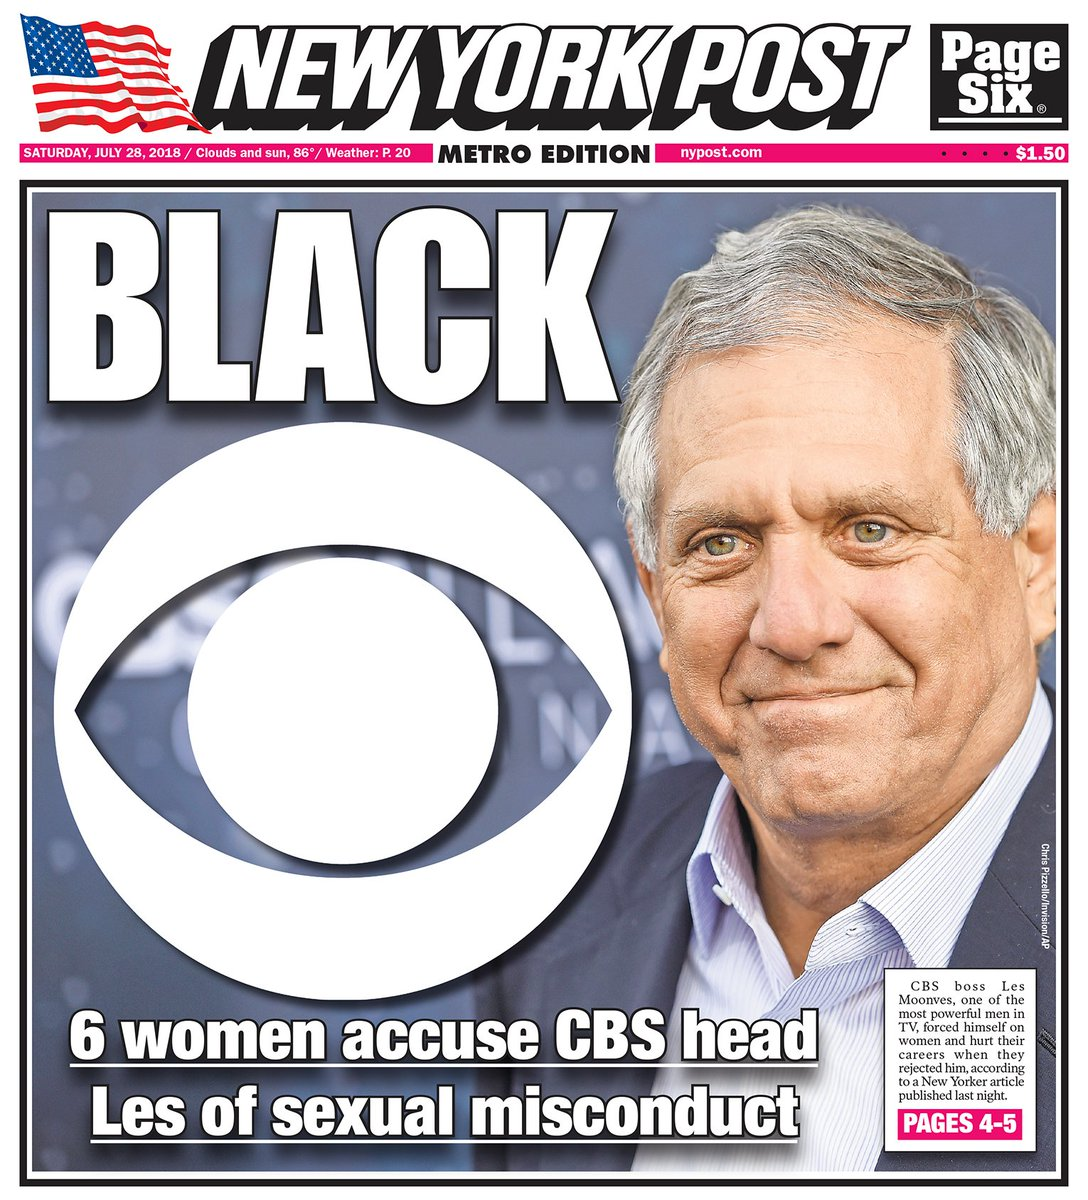 MOONVES STARS IN OWN DRAMA